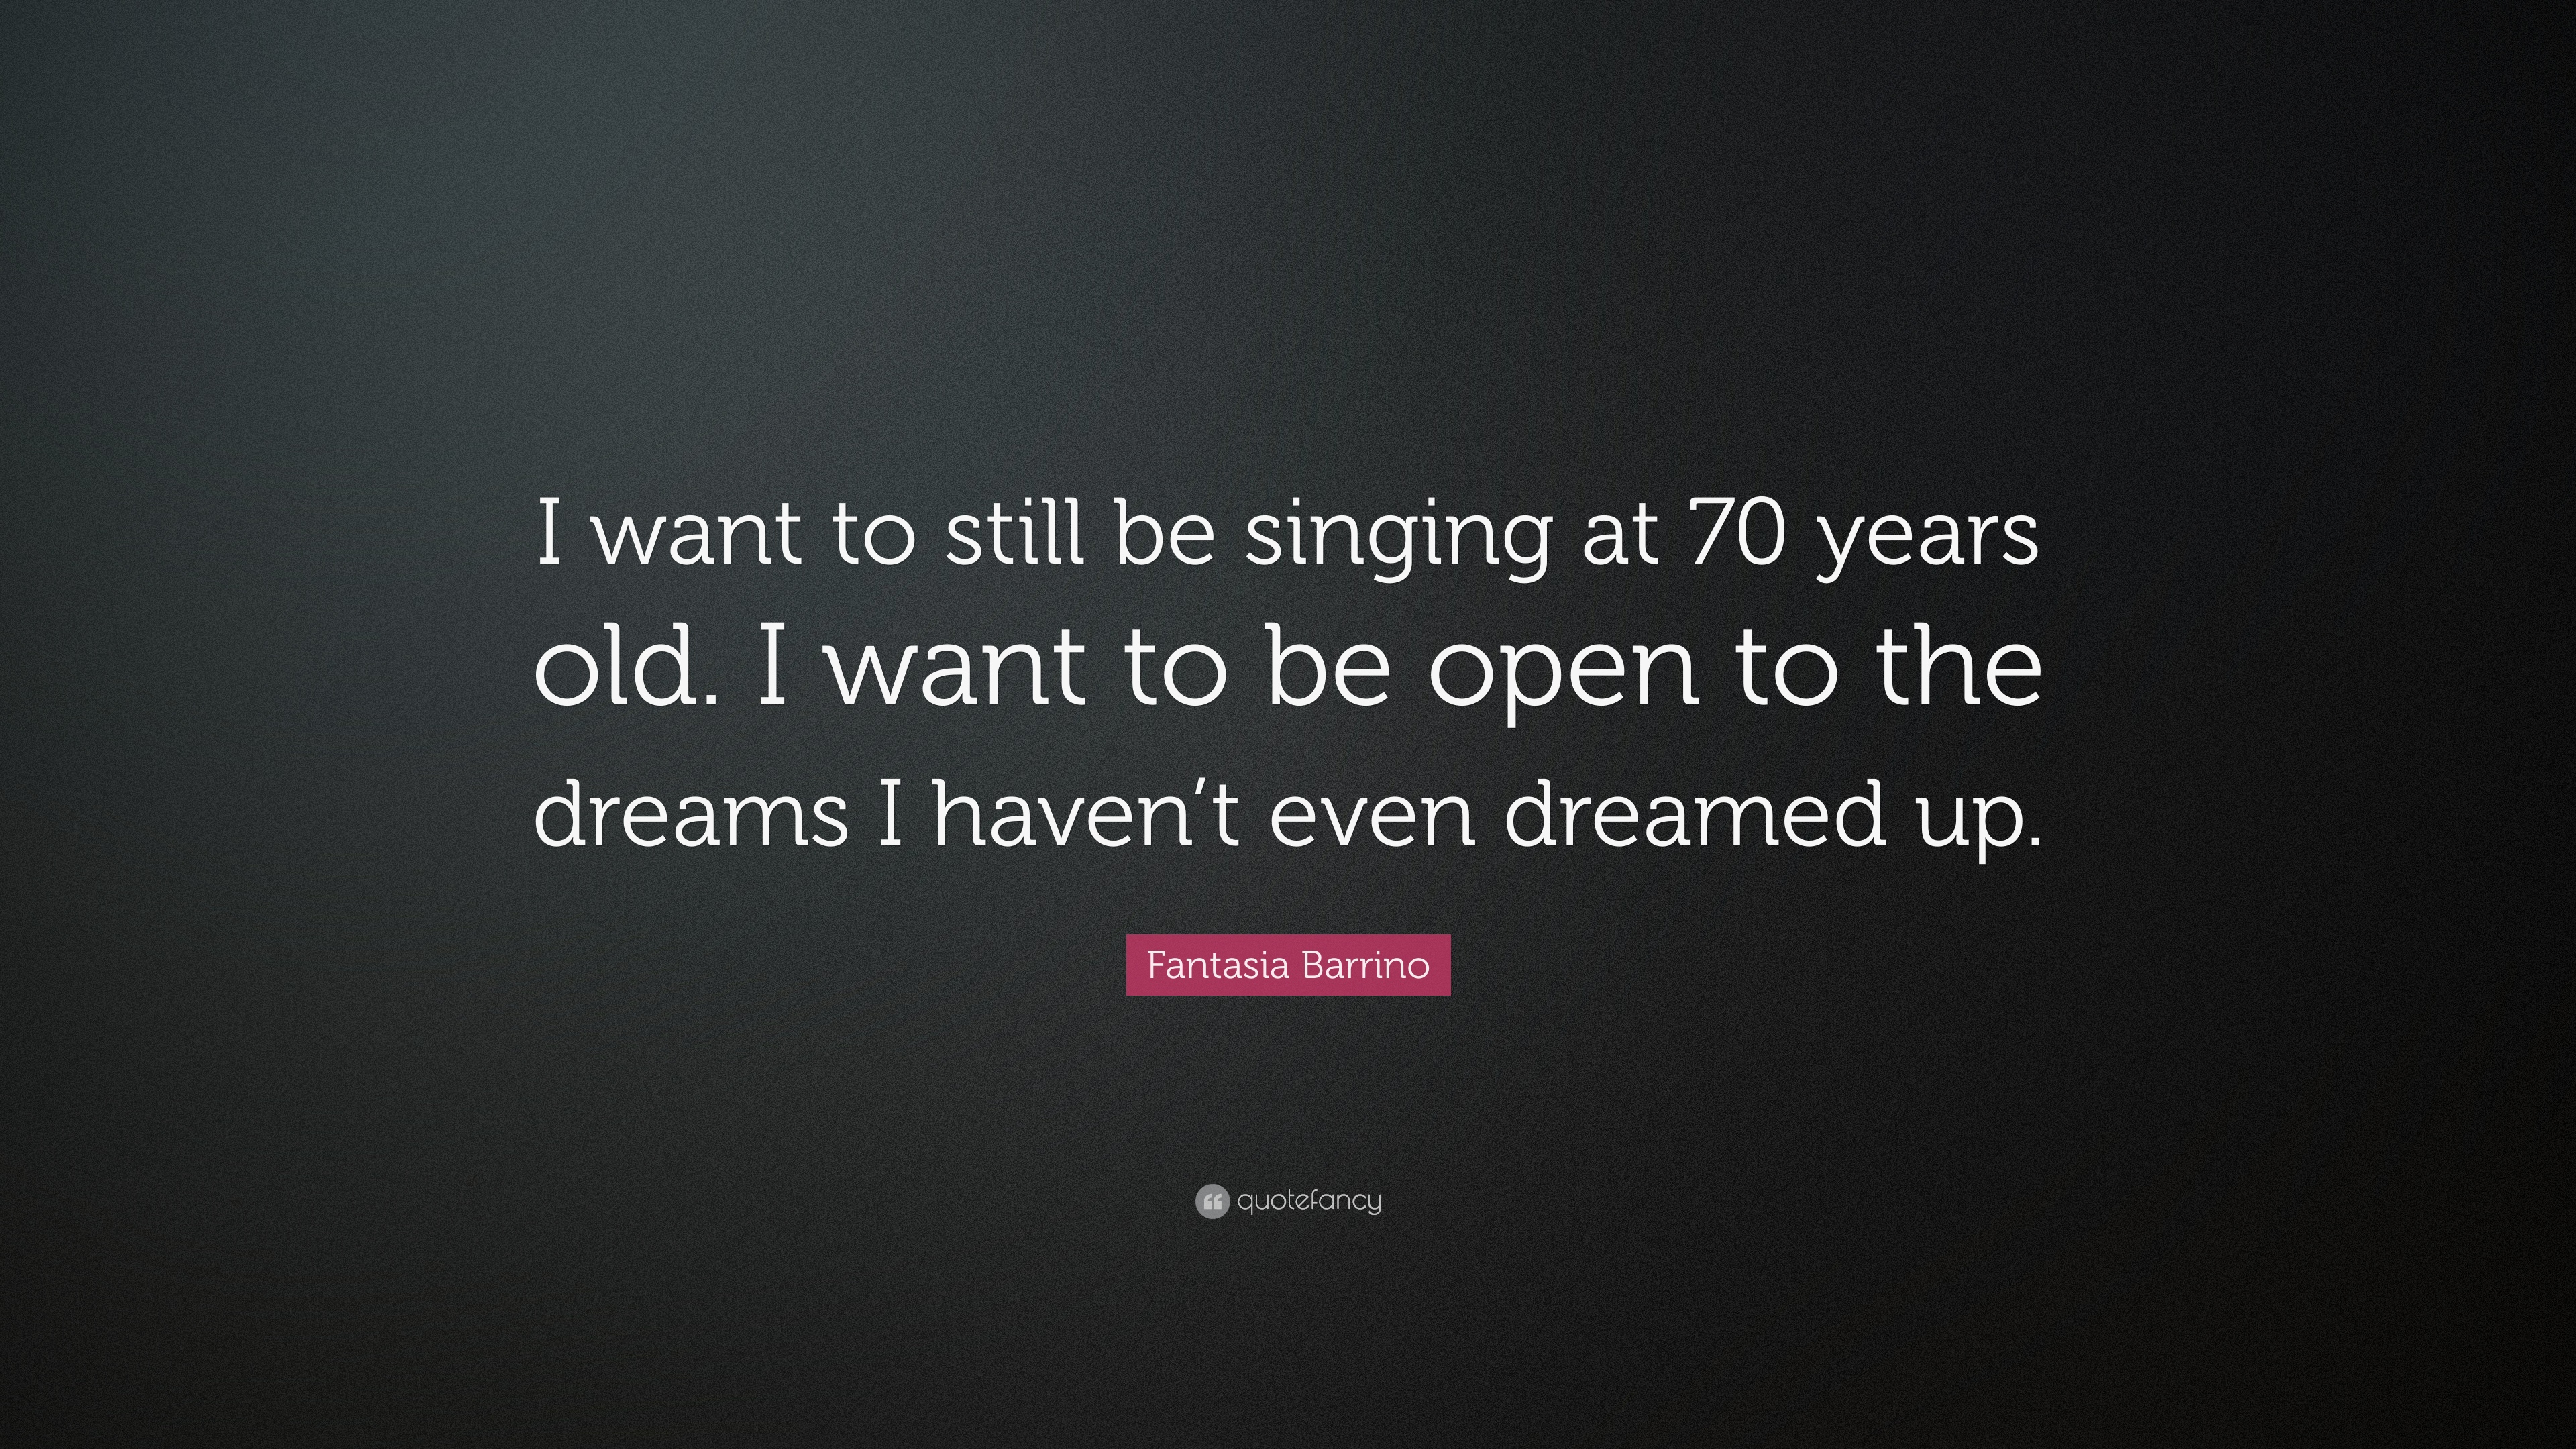 Fantasia barrino quote i want to still be singing at 70 years old